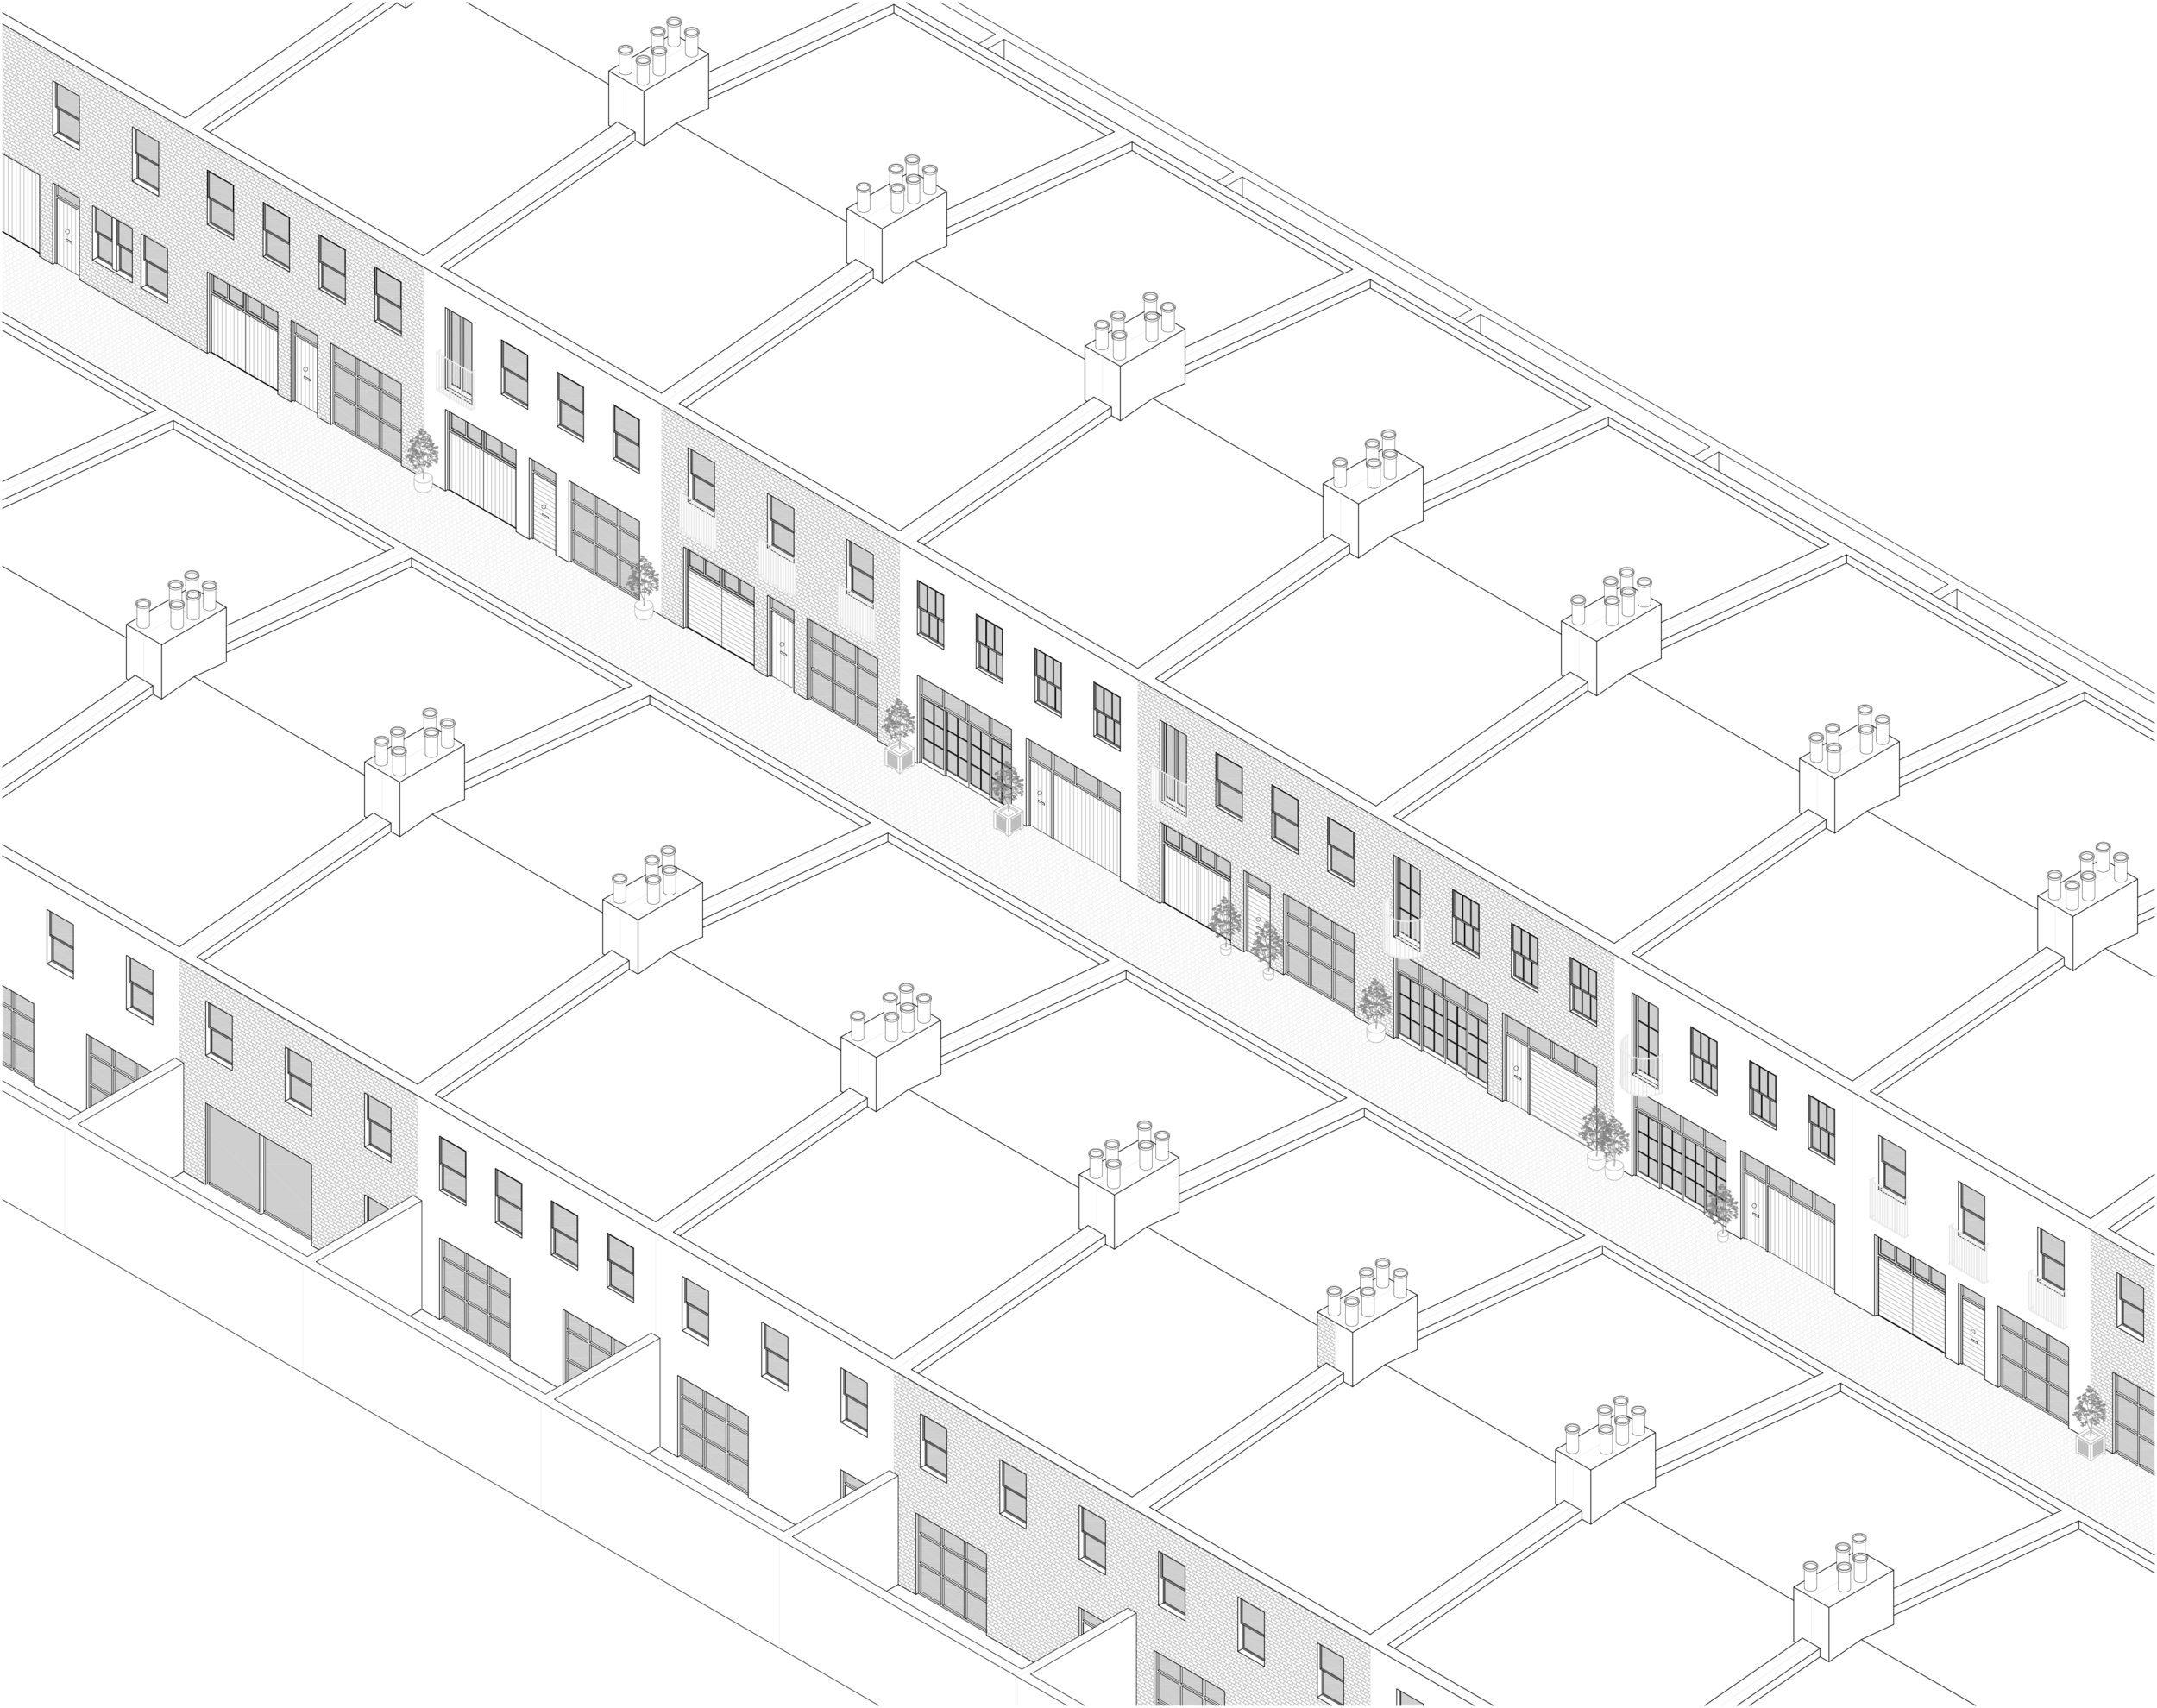 Axonometric of typical London Mews| Prime Architecture